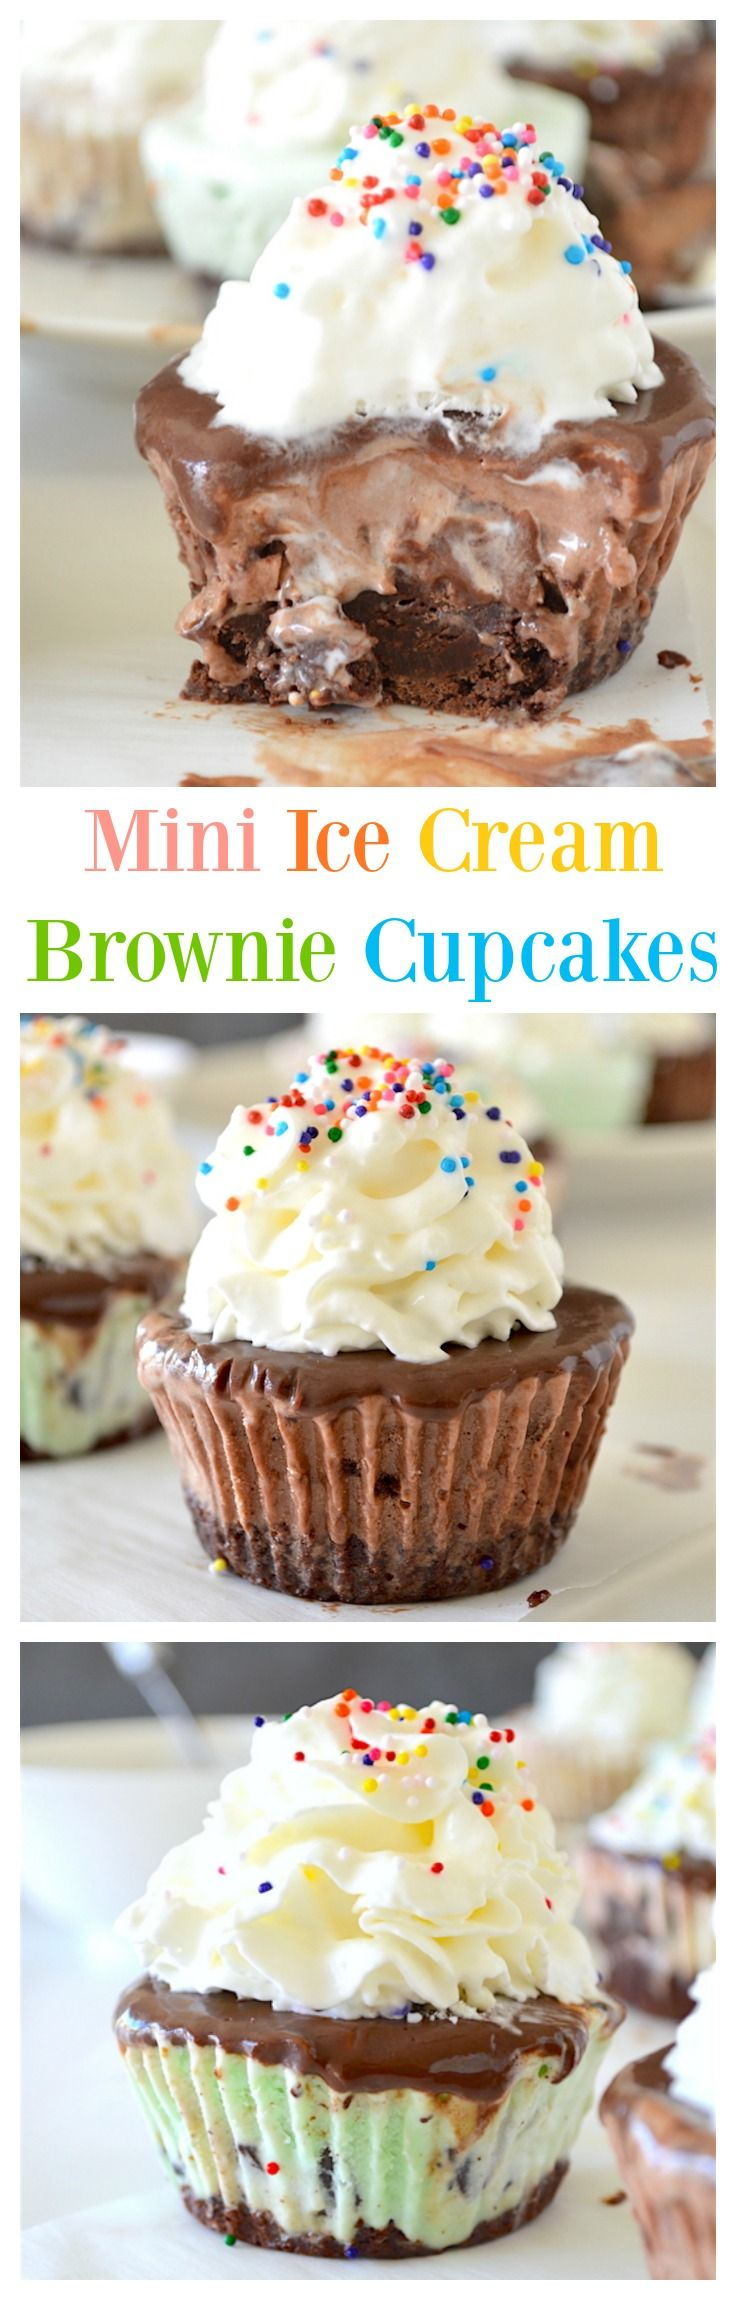 Mini Ice Cream Brownie Cupcakes - a chewy brownie layered with ice cream and…